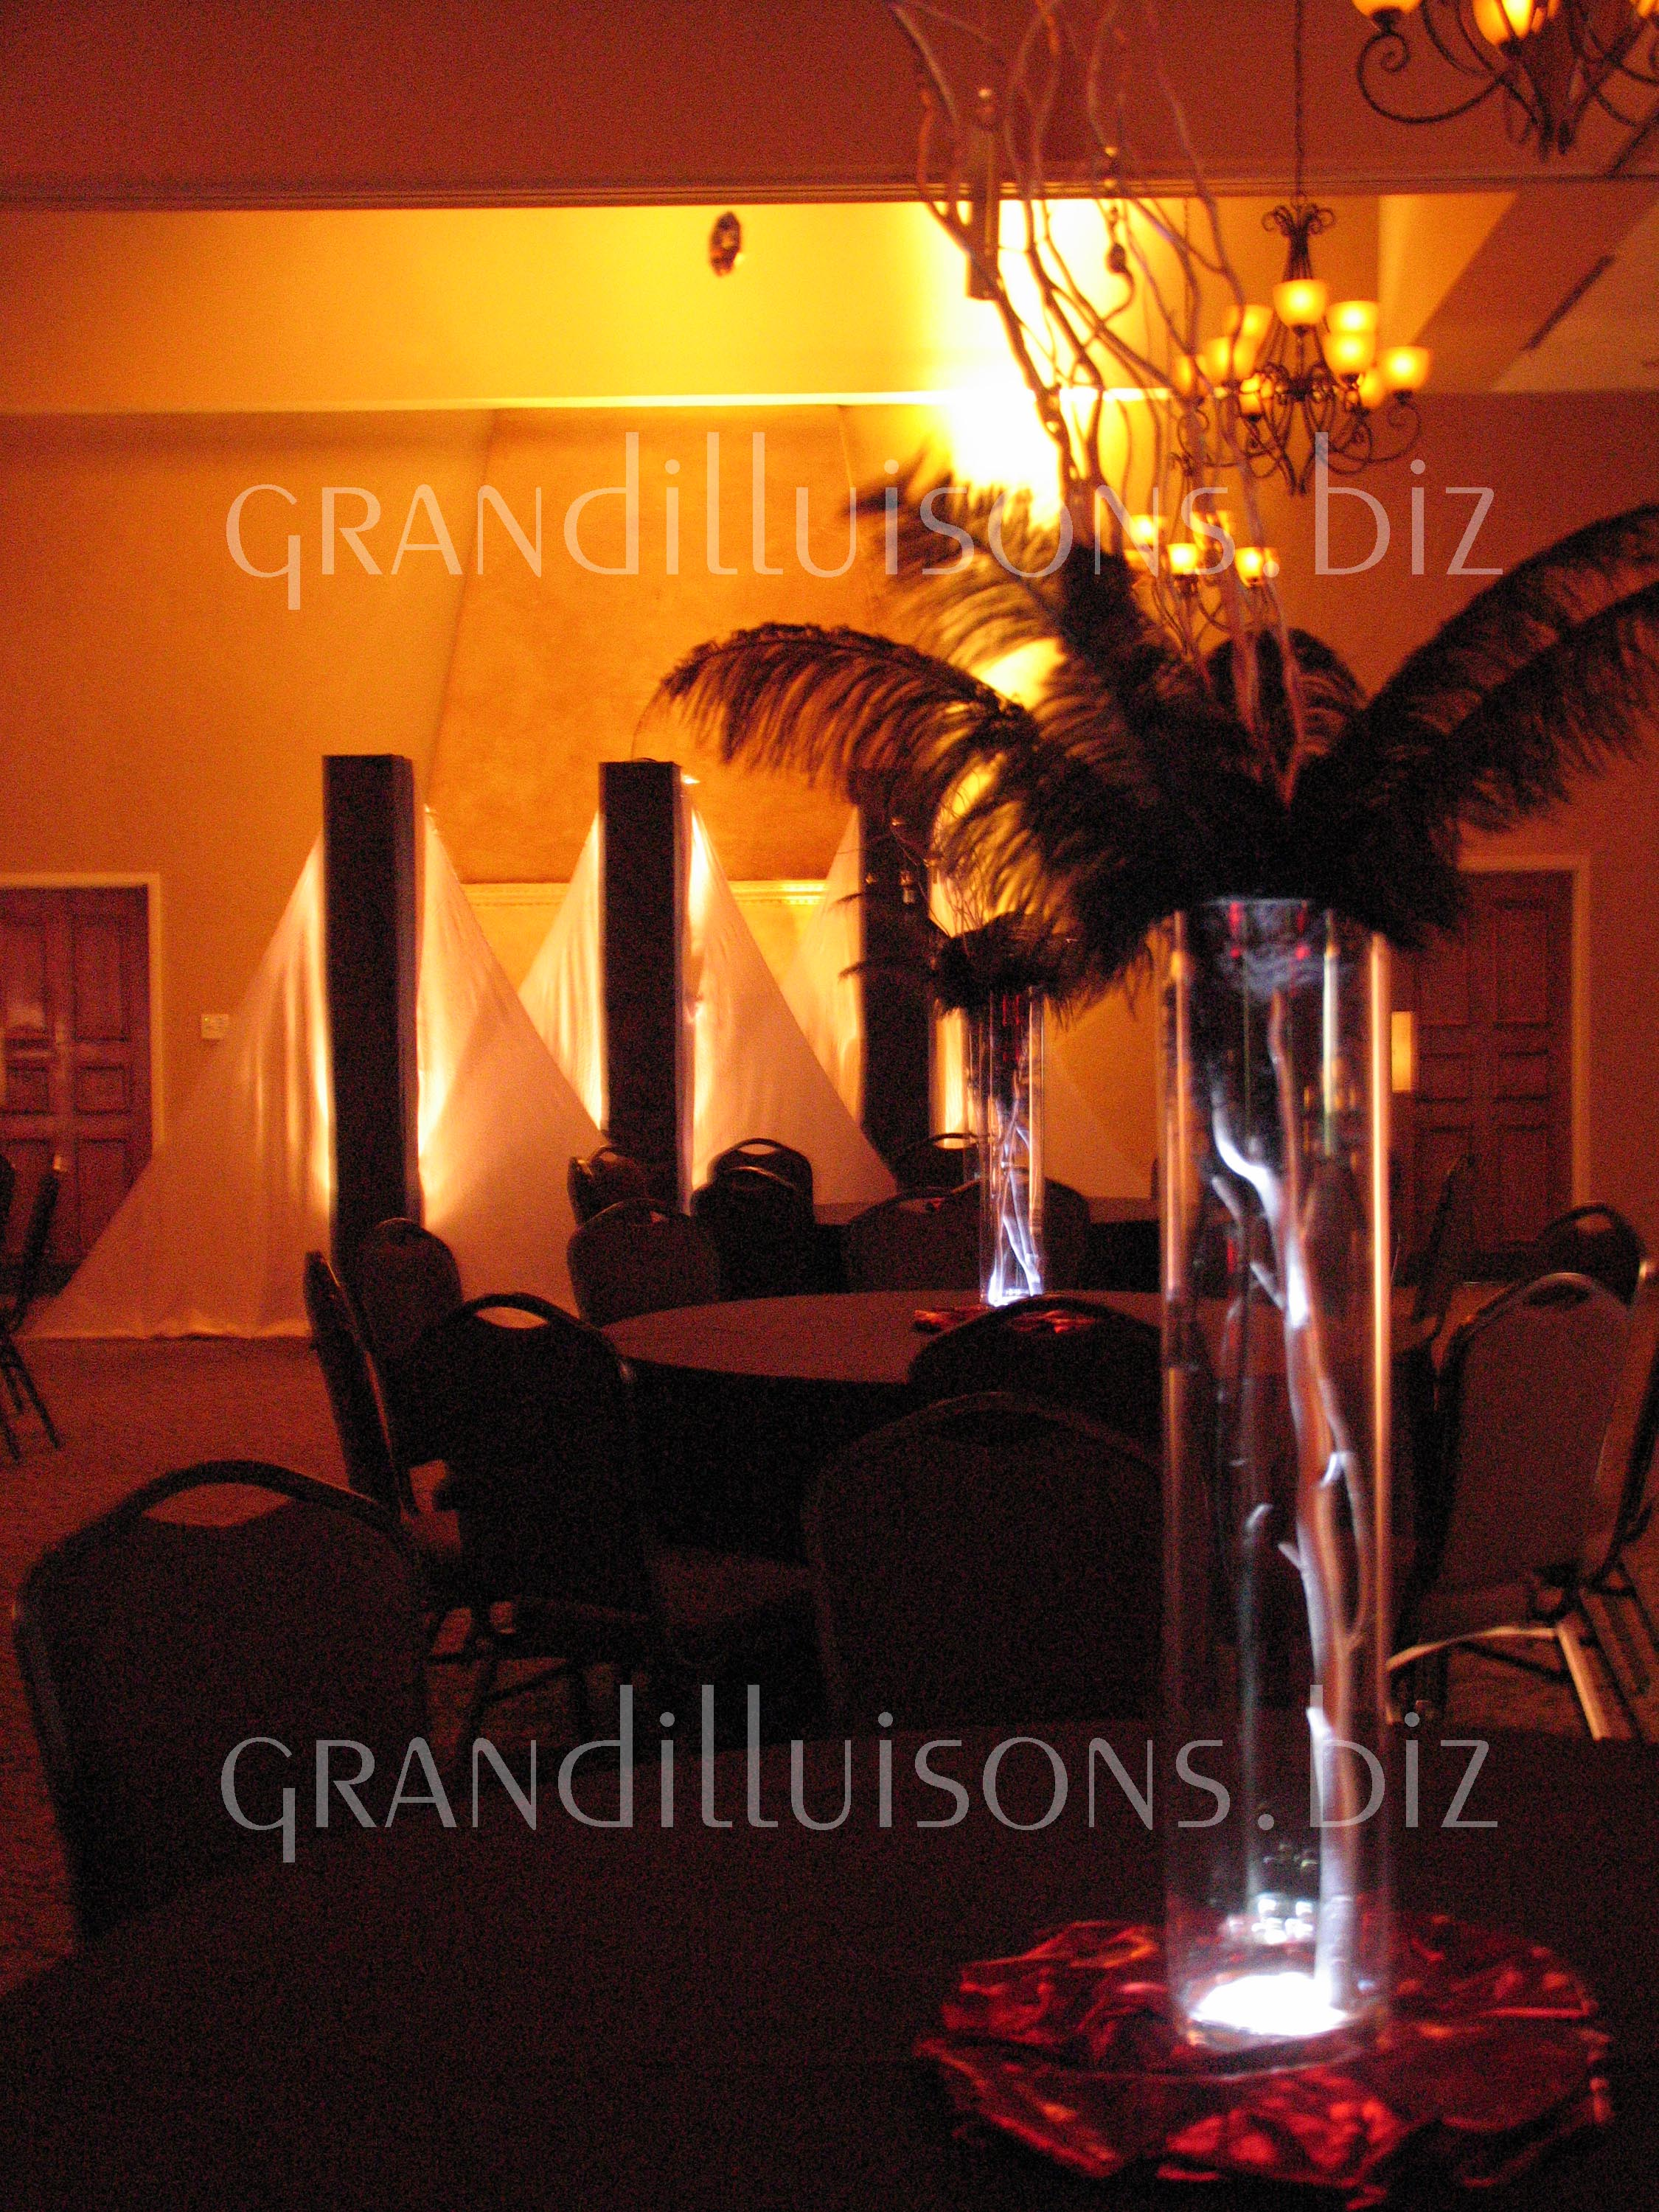 Grand Illusions professional prom decorations in Nebraska prom theme